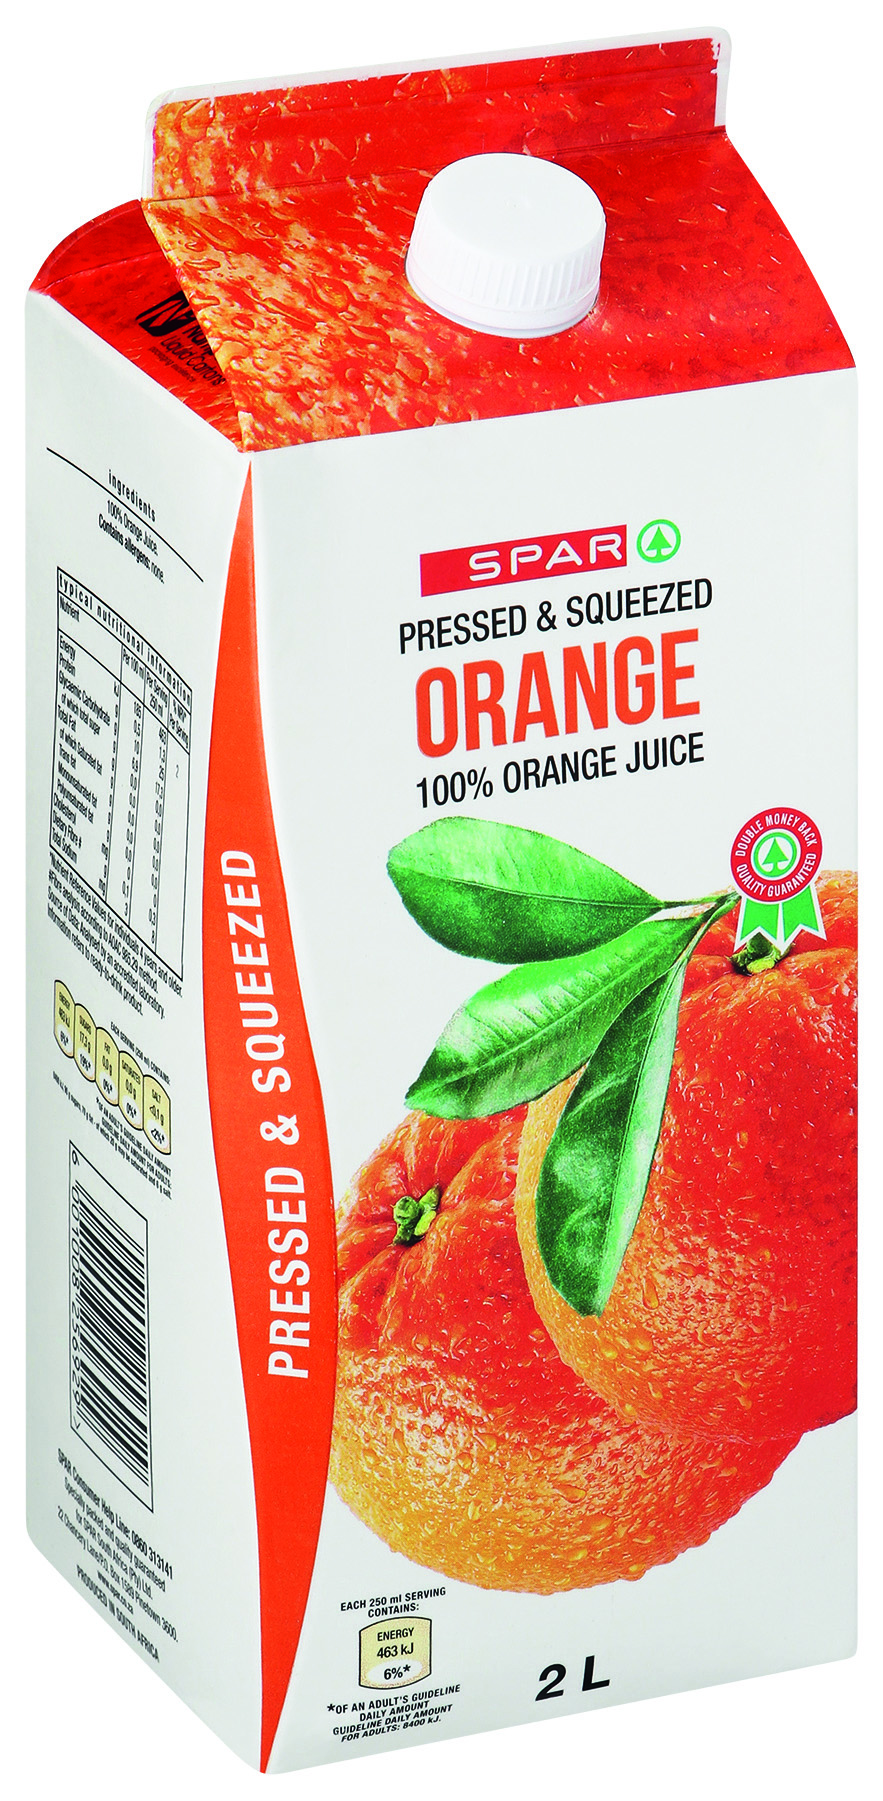 100% fruit juice - orange